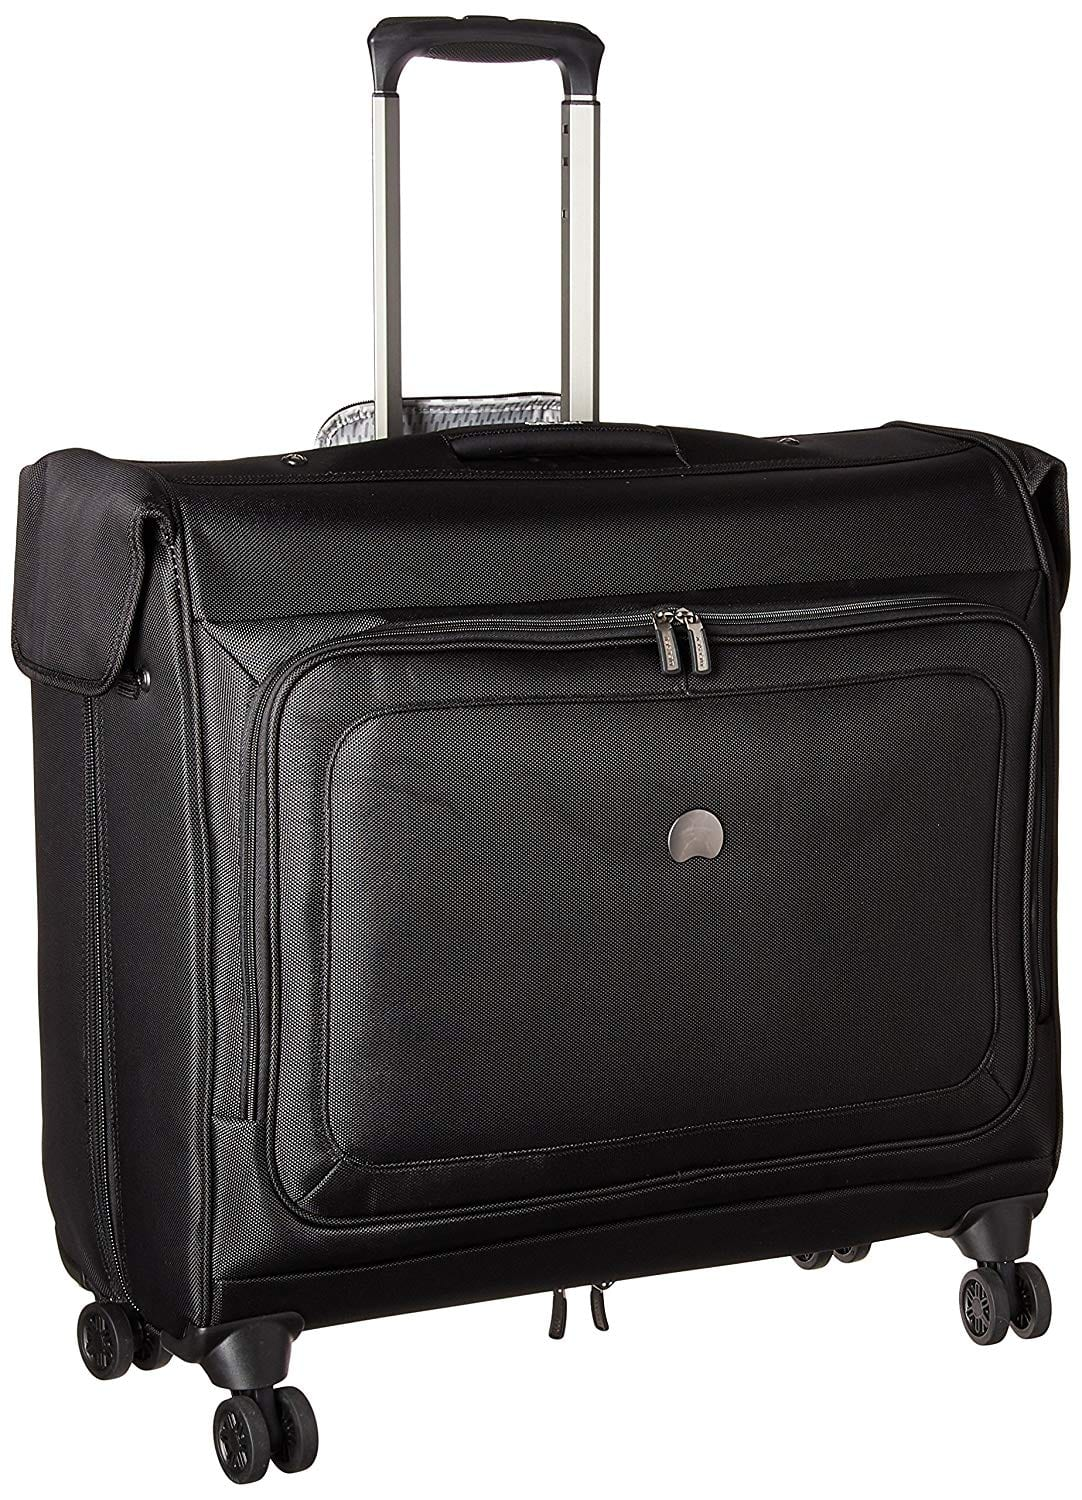 Delsey Luggage Cruise Lite Softside Spinner Trolley Garment Bag